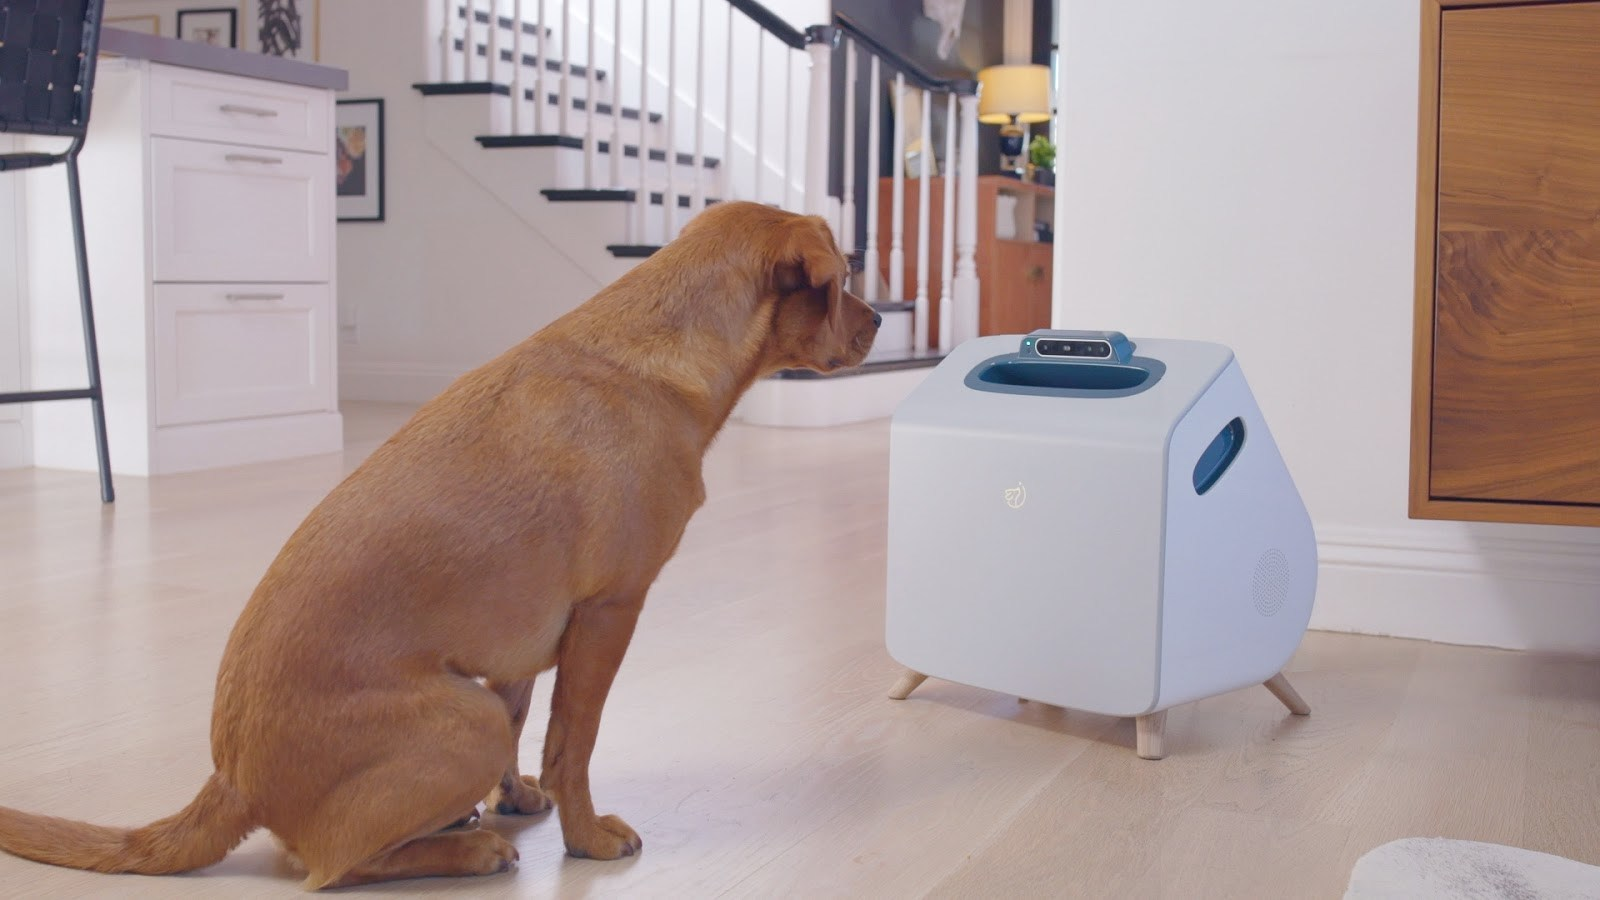 Machine learning and computer vision to talk to dogs